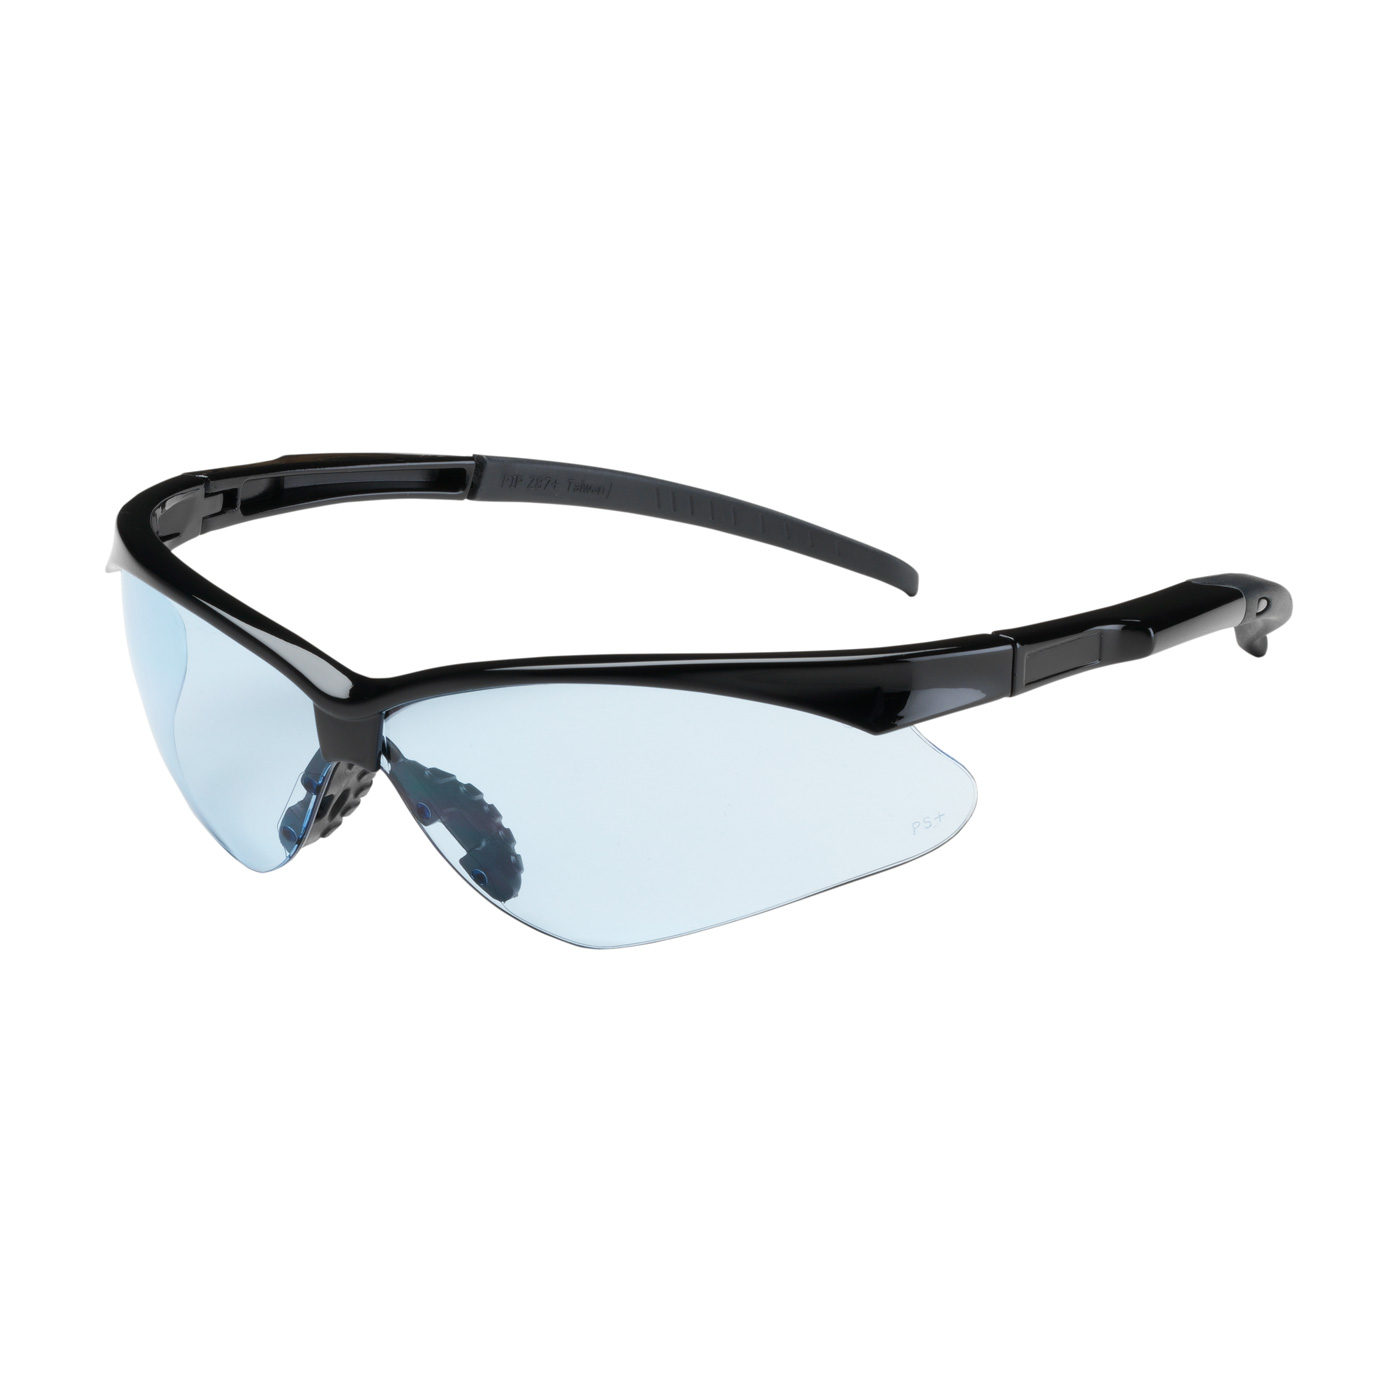 Rimless Glasses Distortion : Adversary Protective Industrial Products